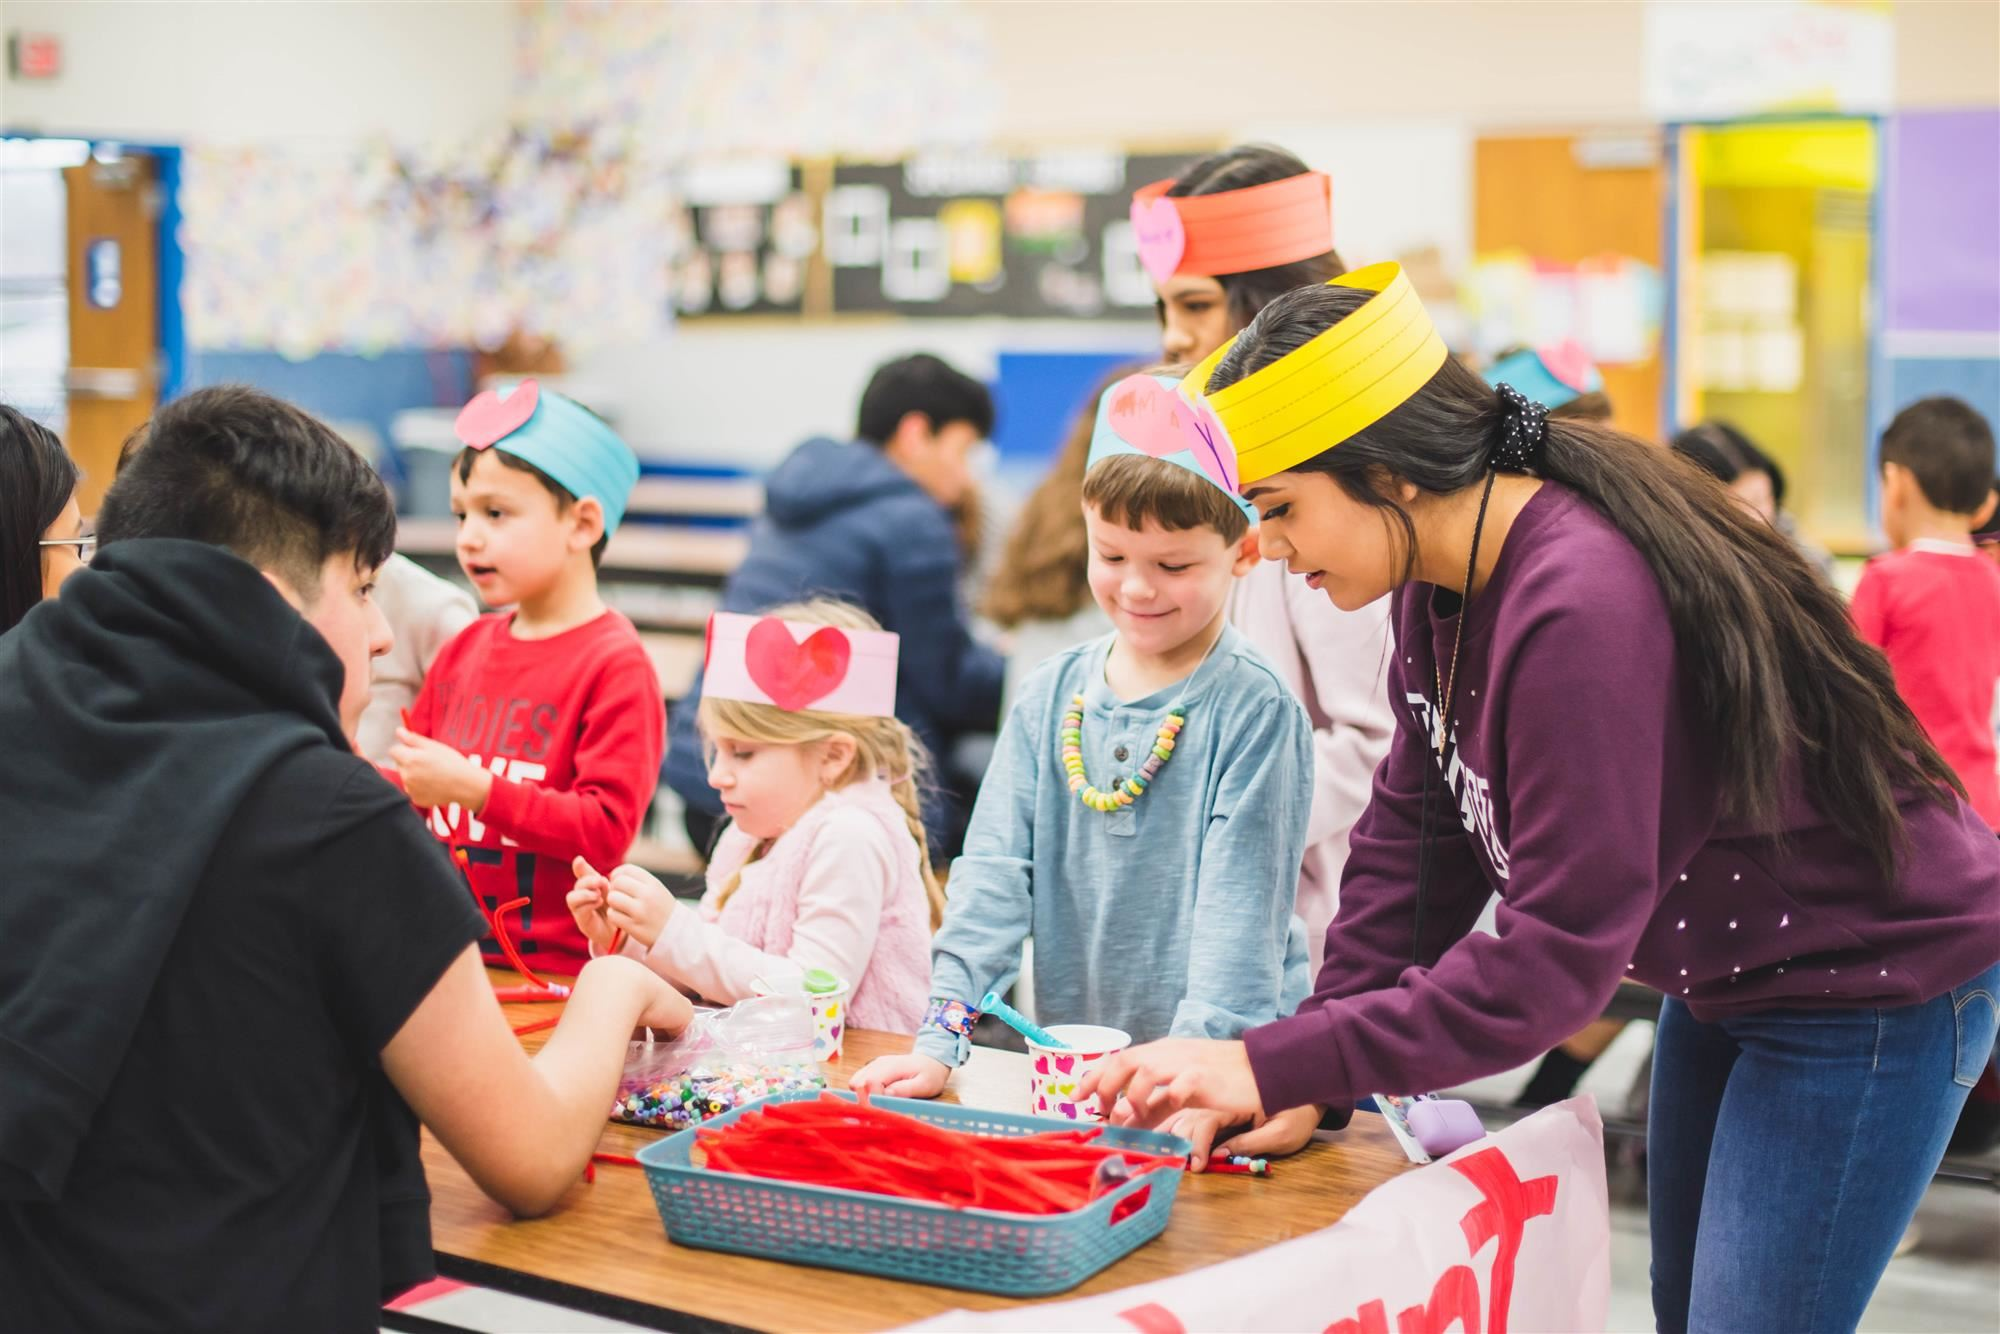 Younger students work with older students on valentine's day crafts